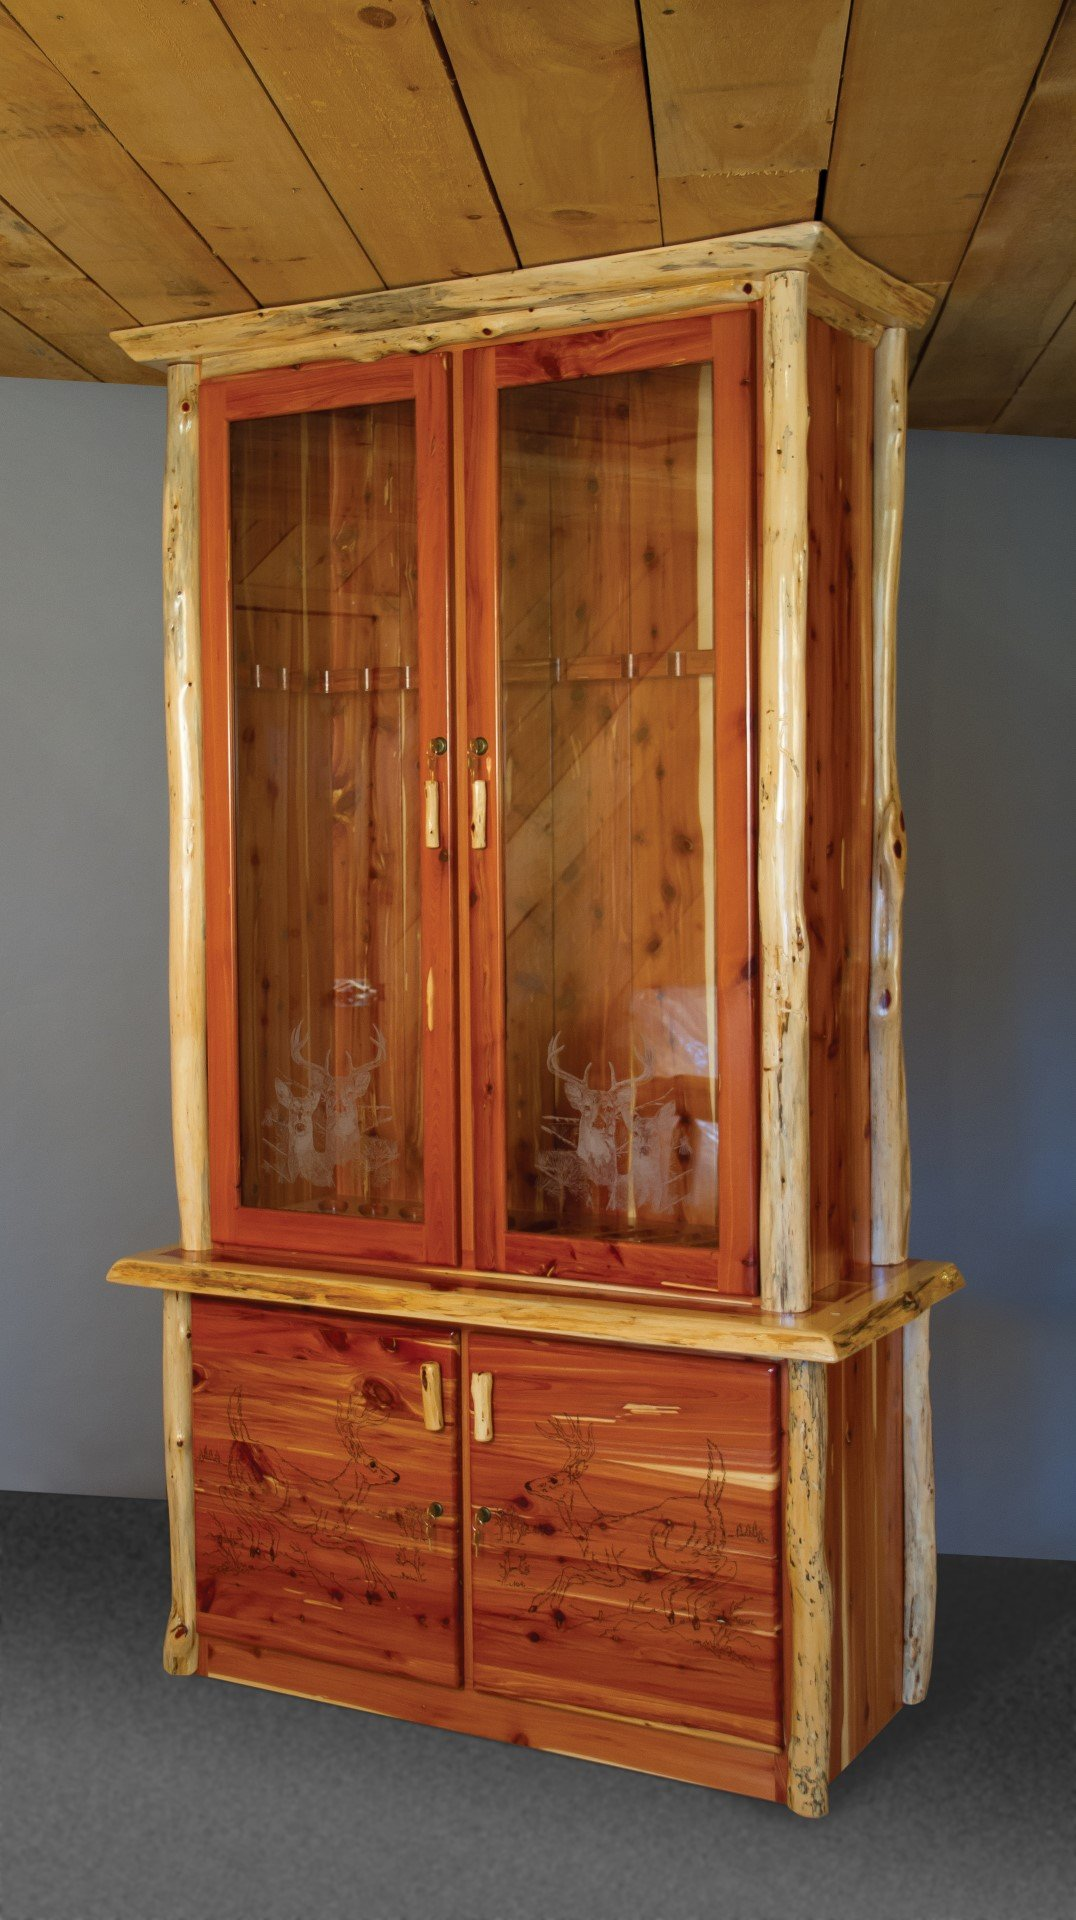 Rustic Red Cedar Log 12-Gun Cabinet - Amish Made in the USA by Furniture Barn USA